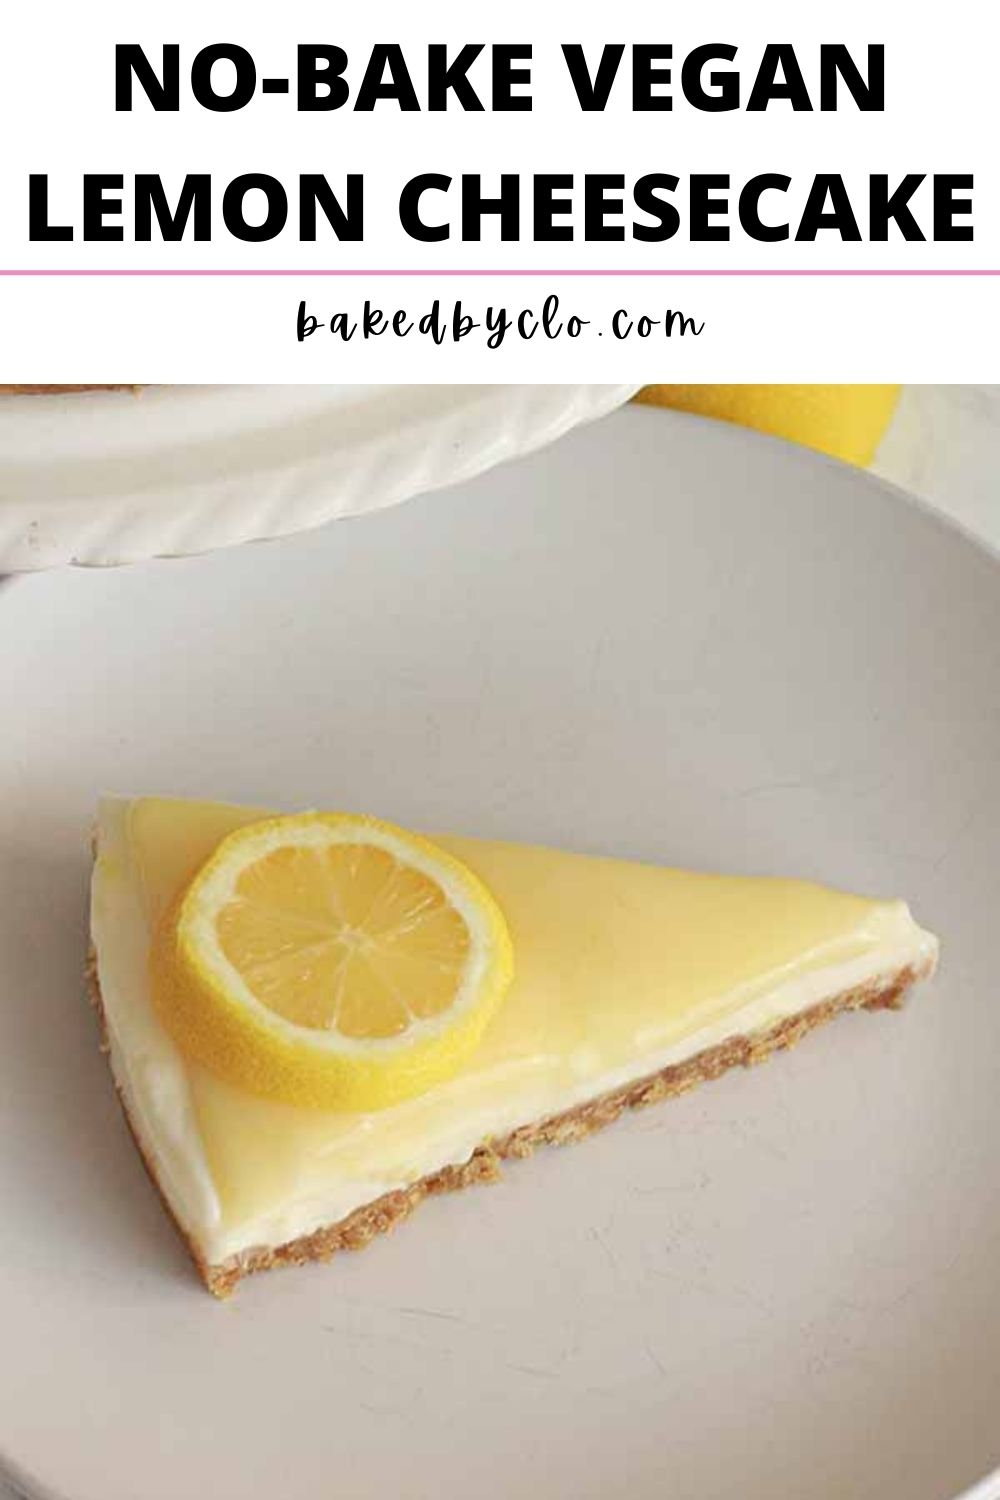 Pinterest pin with an image of a slice of vegan lemon cheesecake